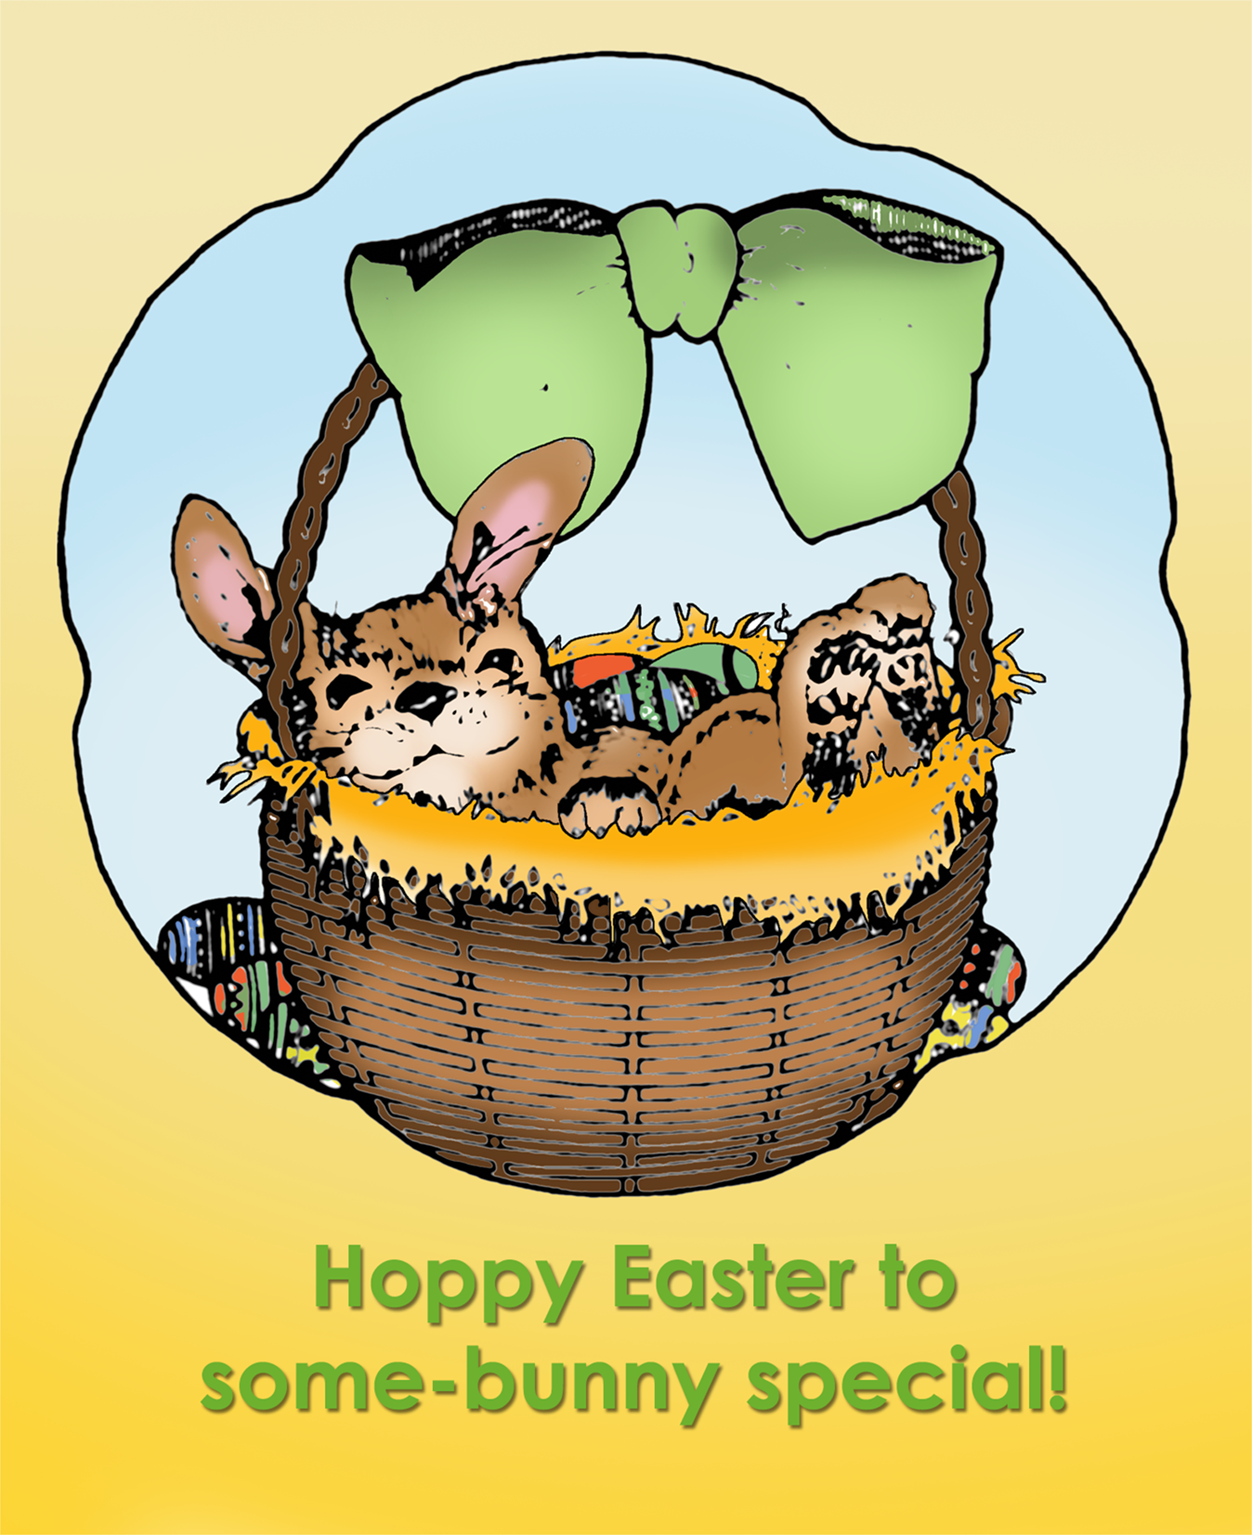 Printable Easter card with cute bunny in a basket.